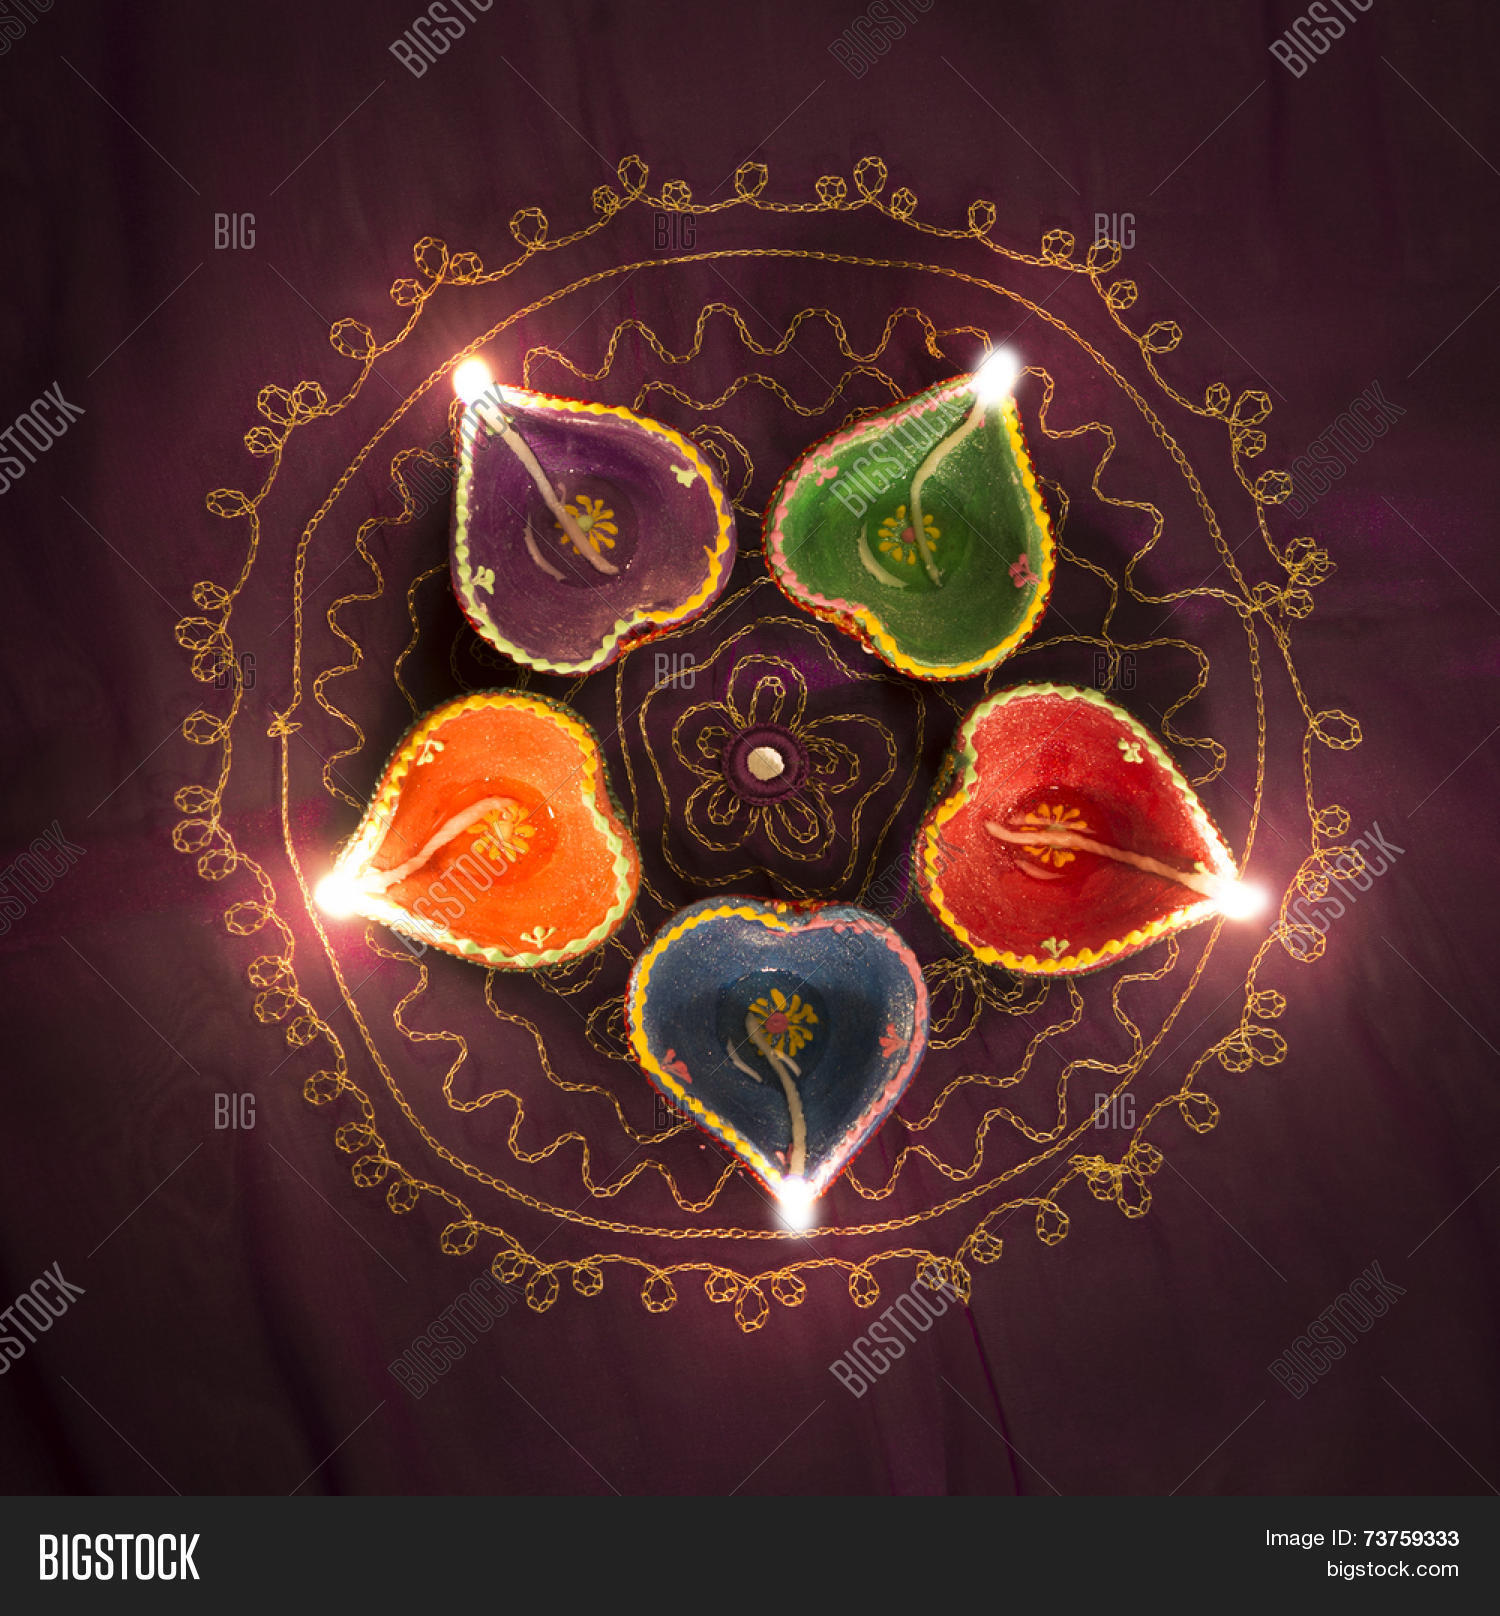 Charming A Group Of Decorative Indian Diwali Lamps   Top View.